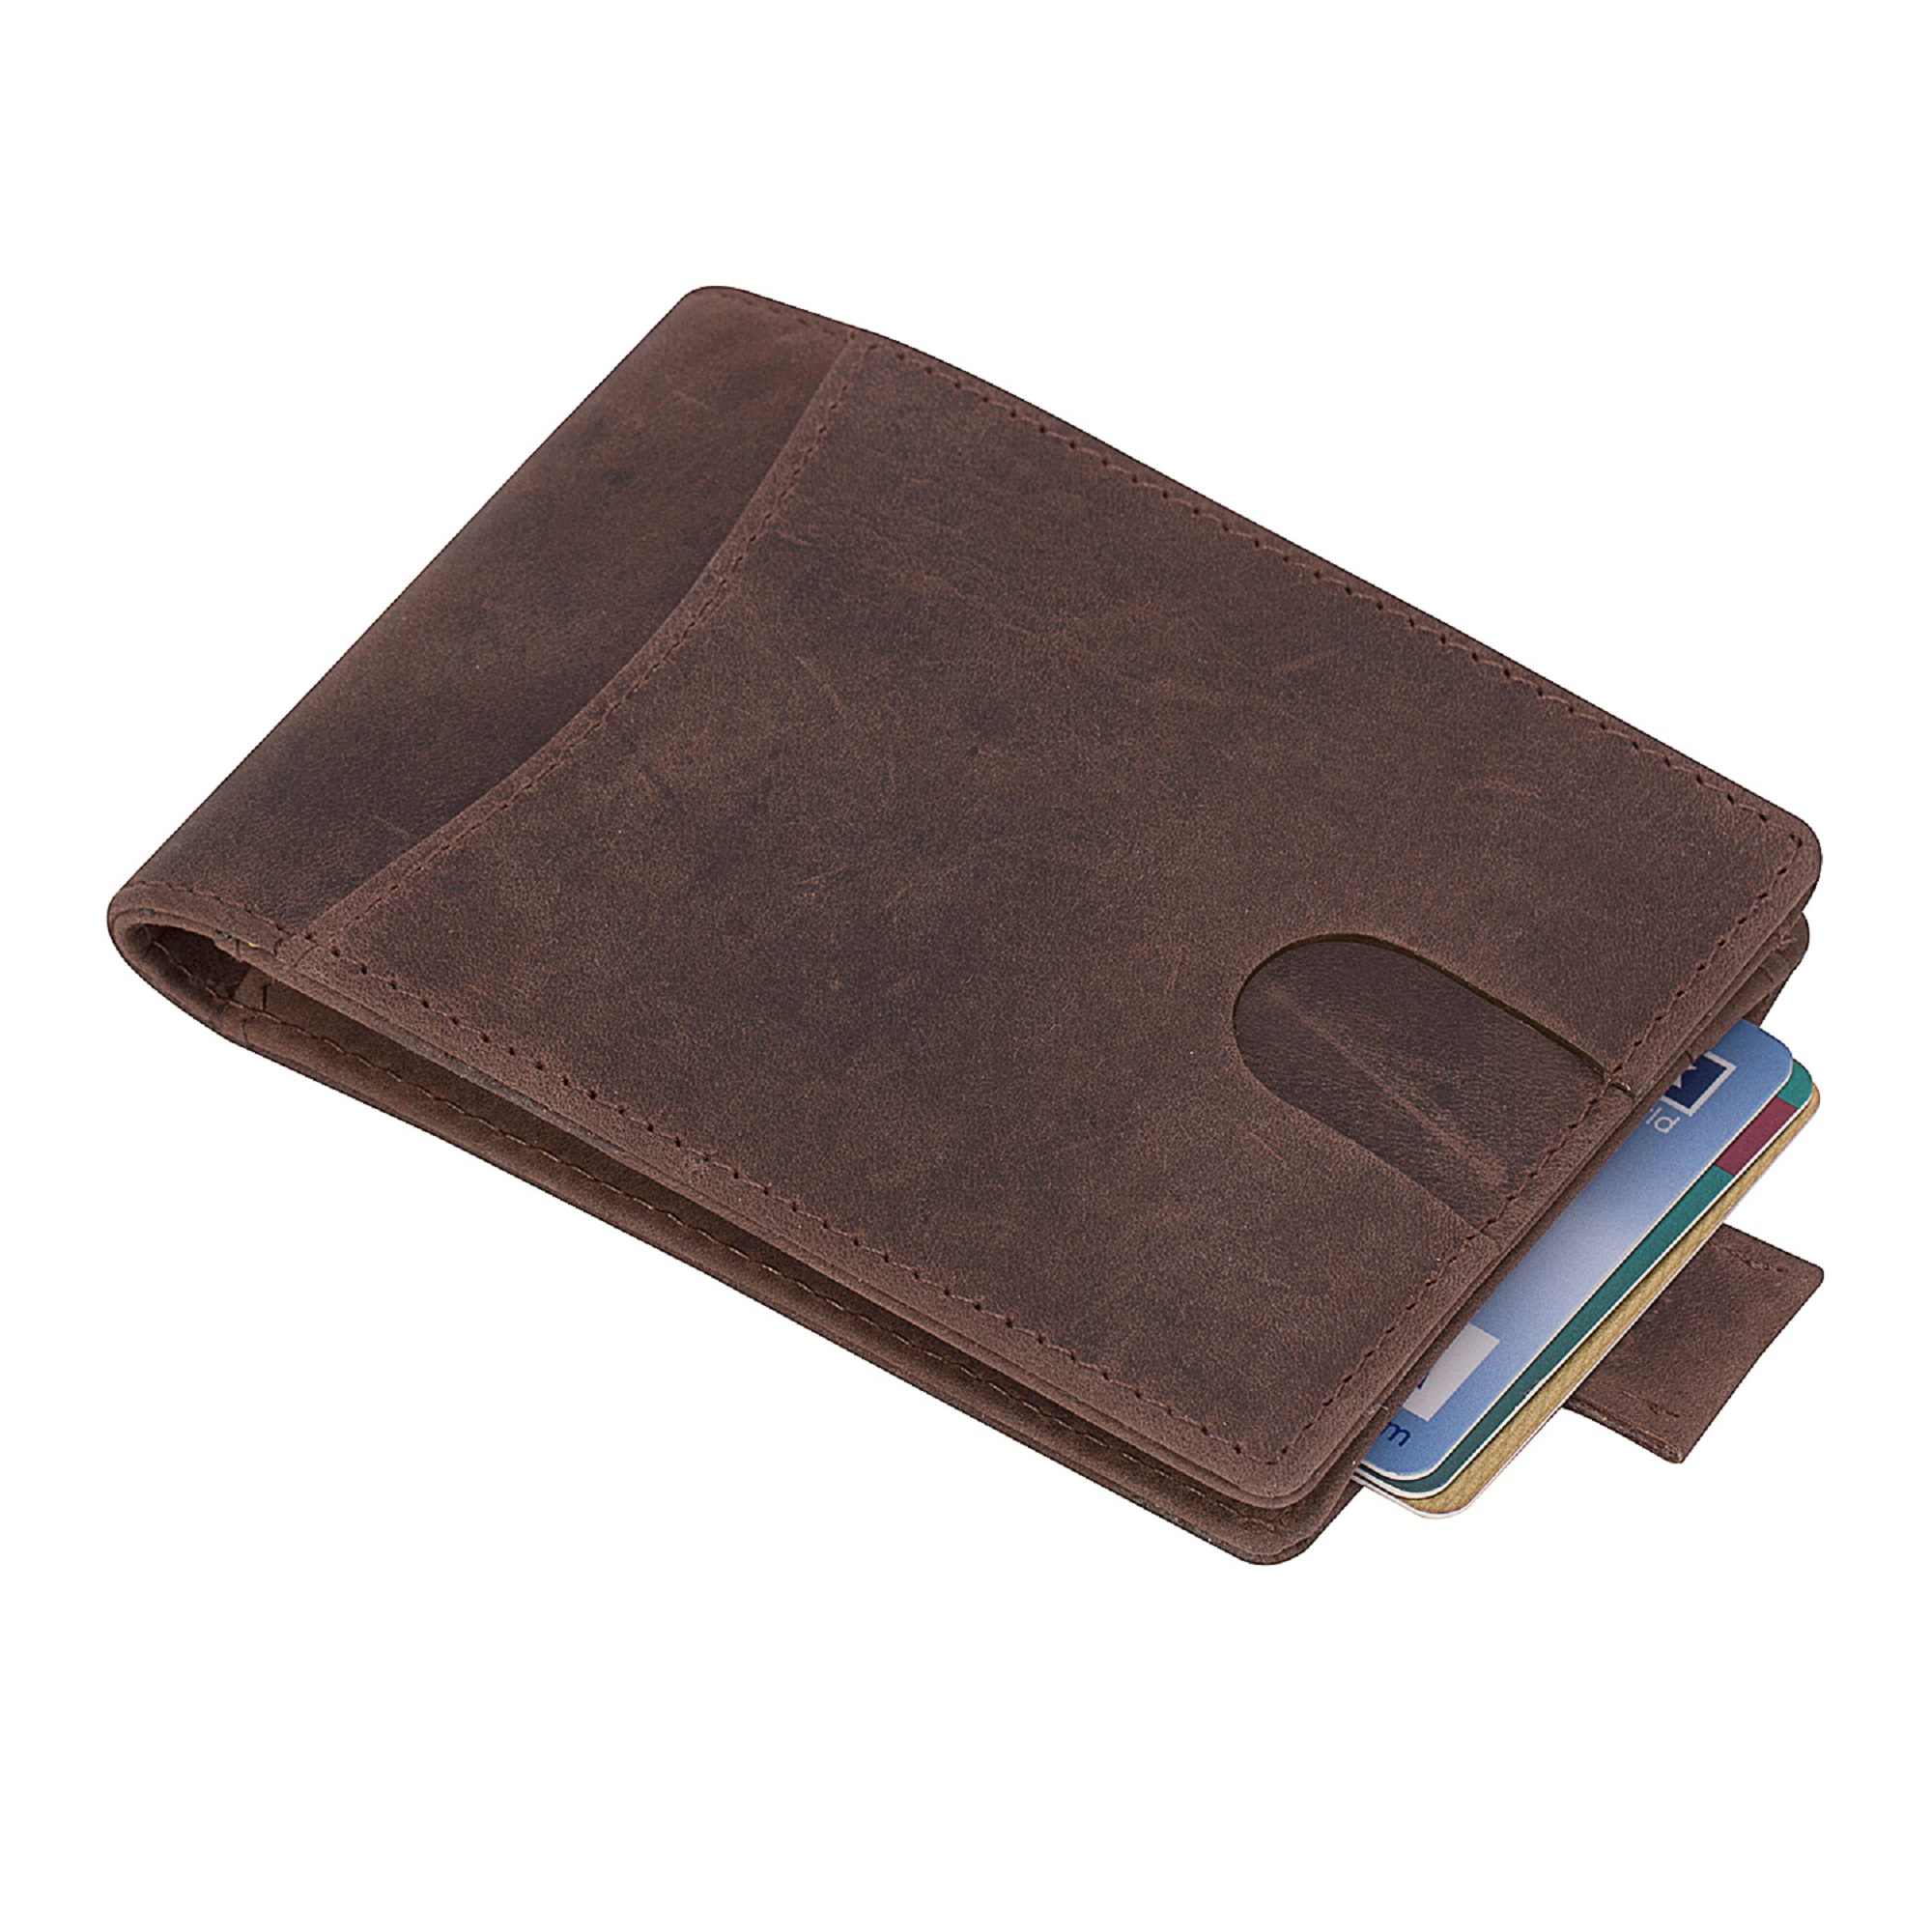 Leather Money Clip Wallet Manufacturers In Delaware, Money Clip Wallet Suppliers In Delaware, Money Clip Wallet Wholesalers In Delaware, Money Clip Wallet Traders In Delaware